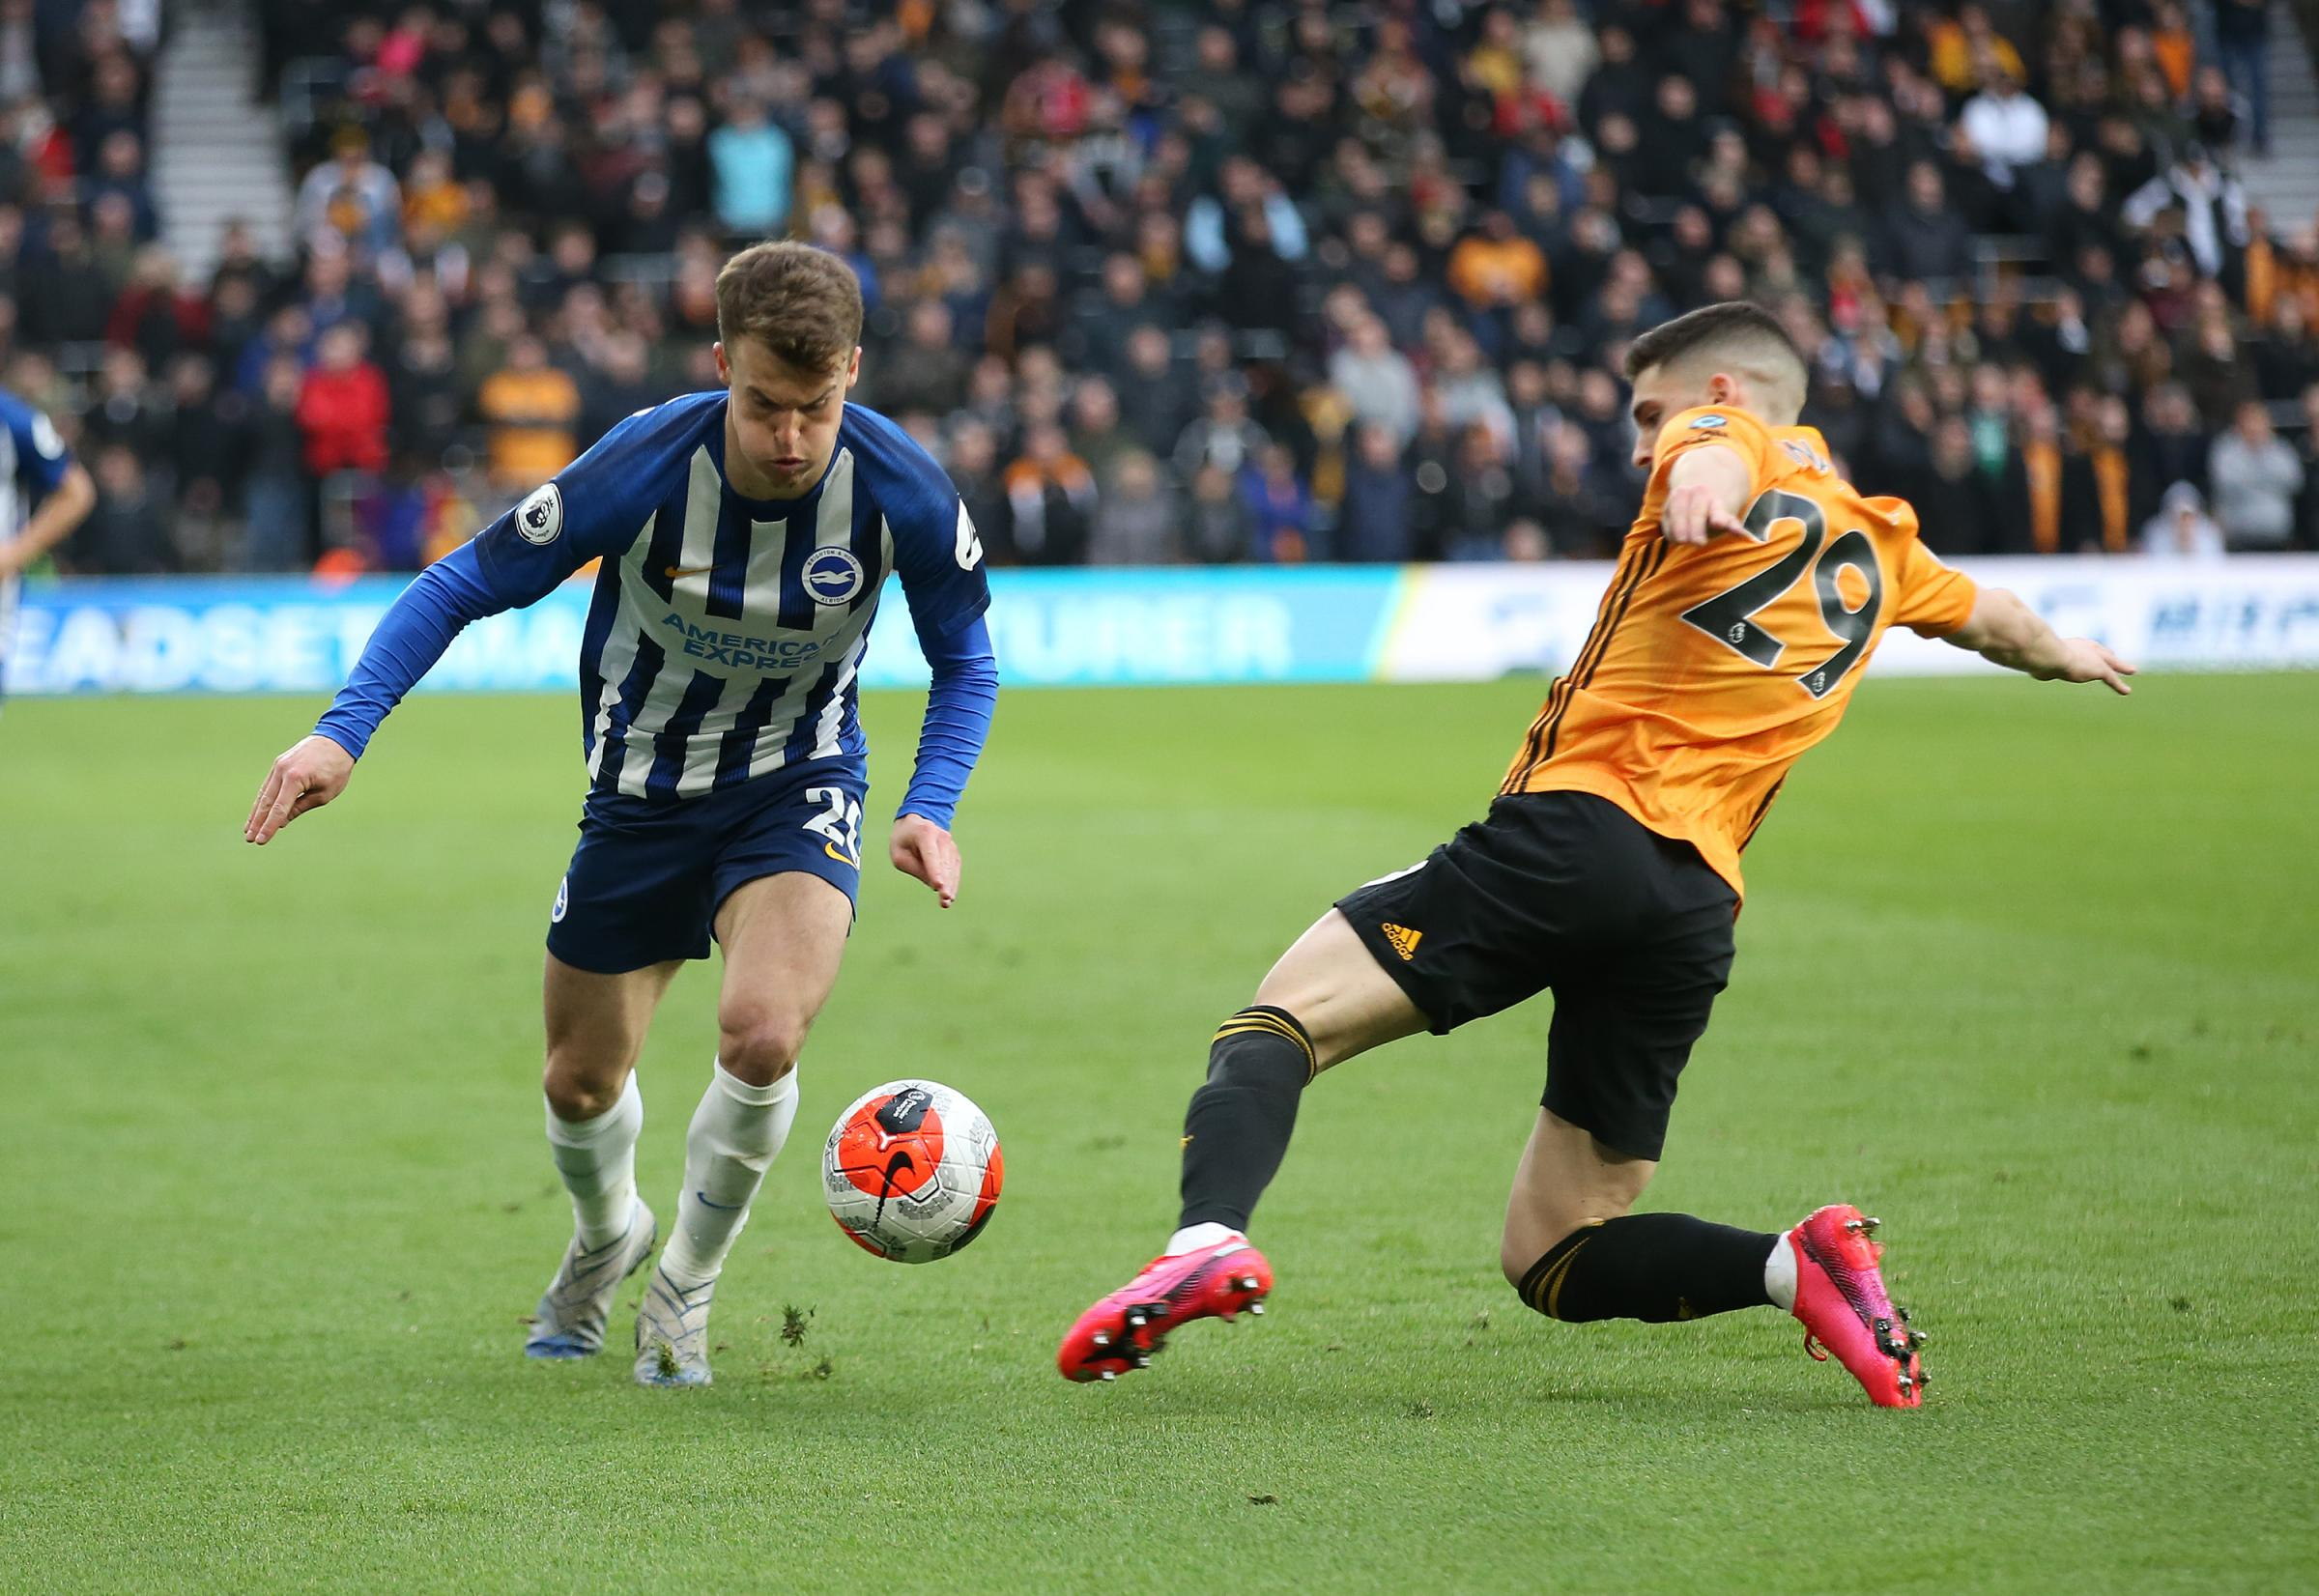 No date yet for return to Premier League matches